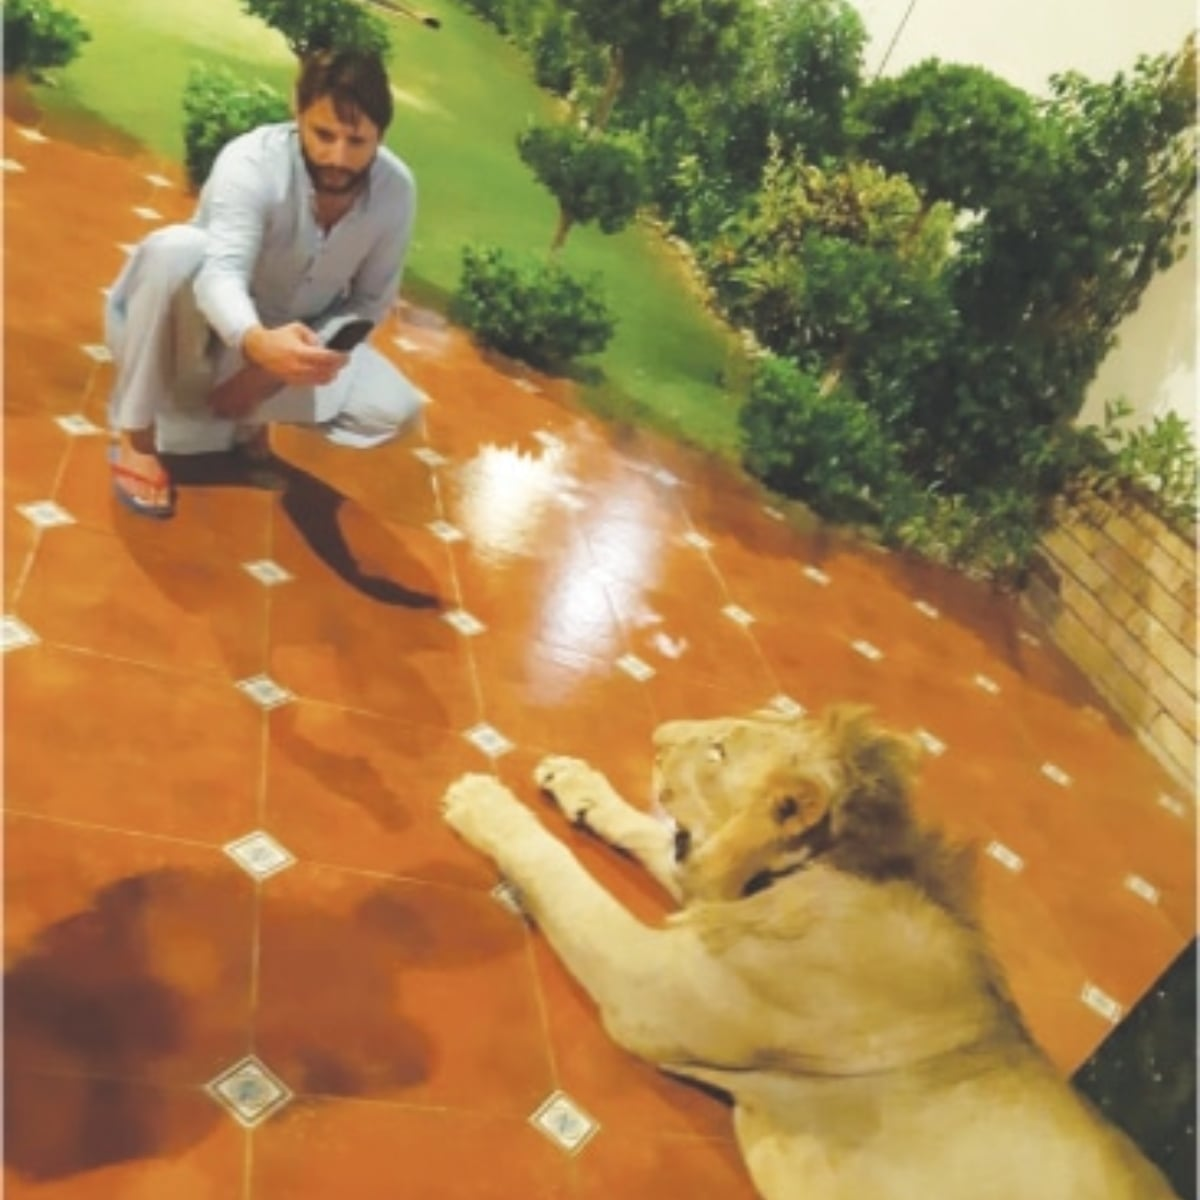 Shahid Afridi takes a photo of his fan's lion